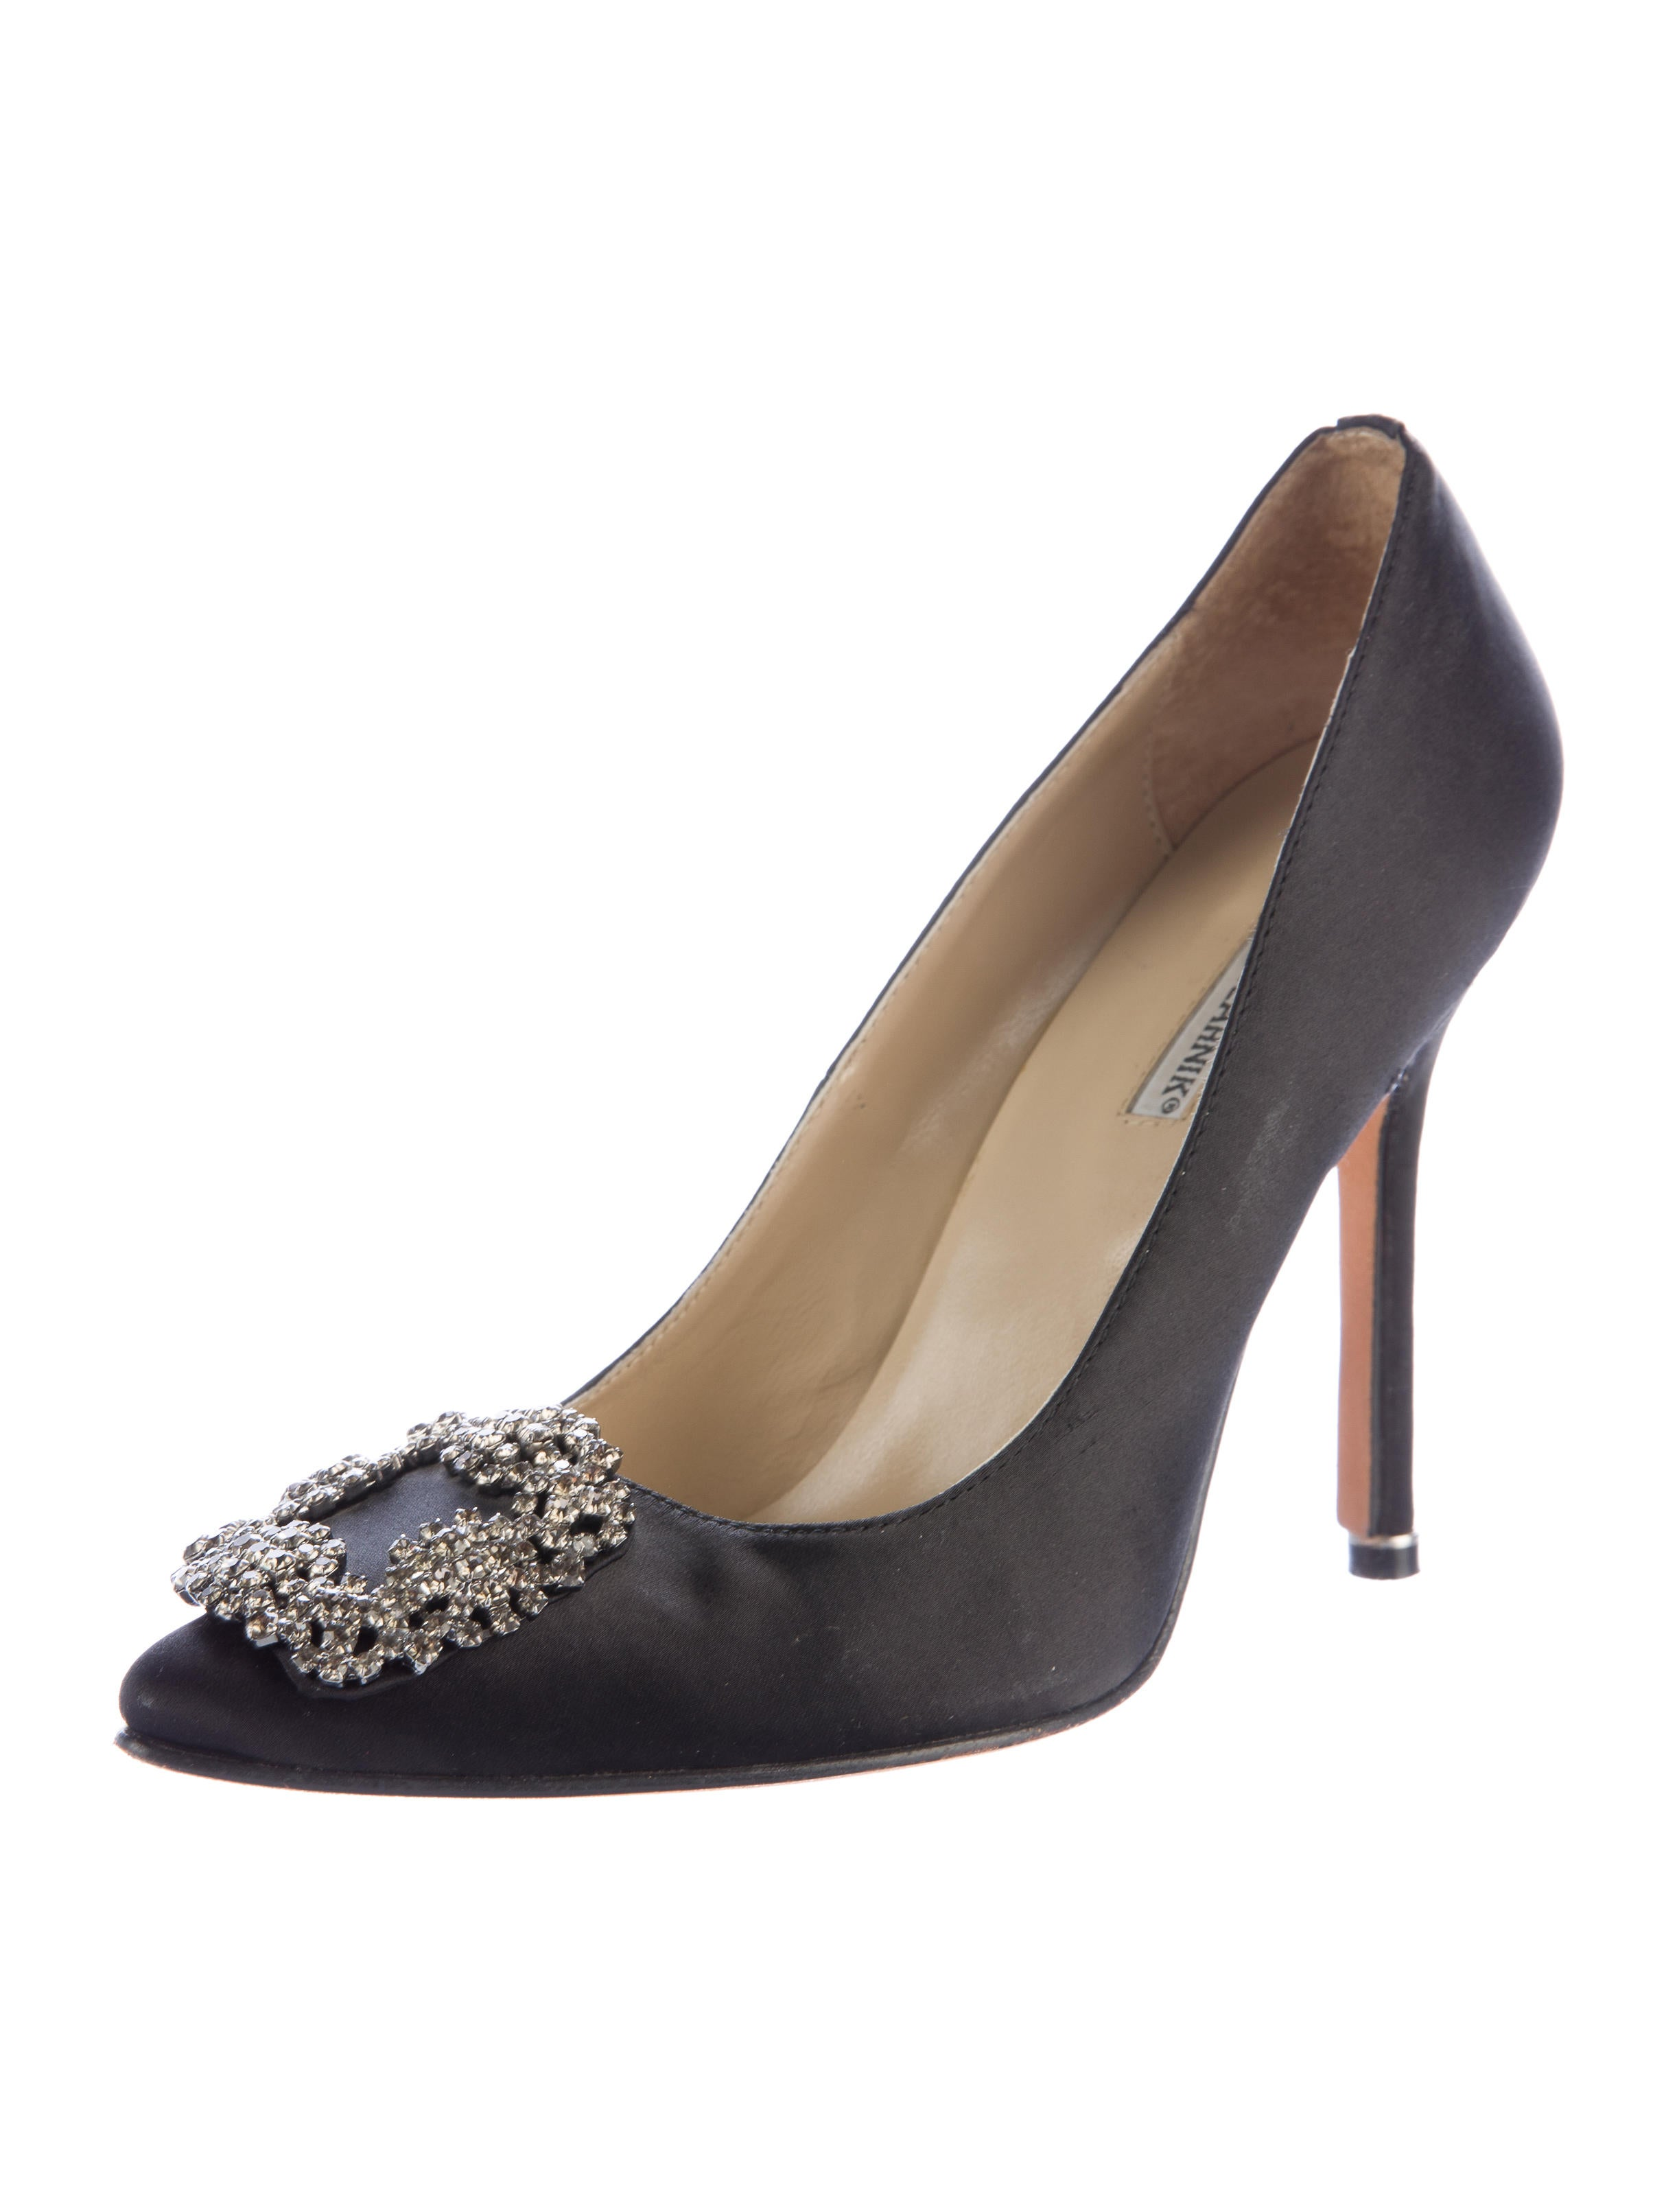 Manolo blahnik satin hangisi pumps shoes moo65006 for Who is manolo blahnik